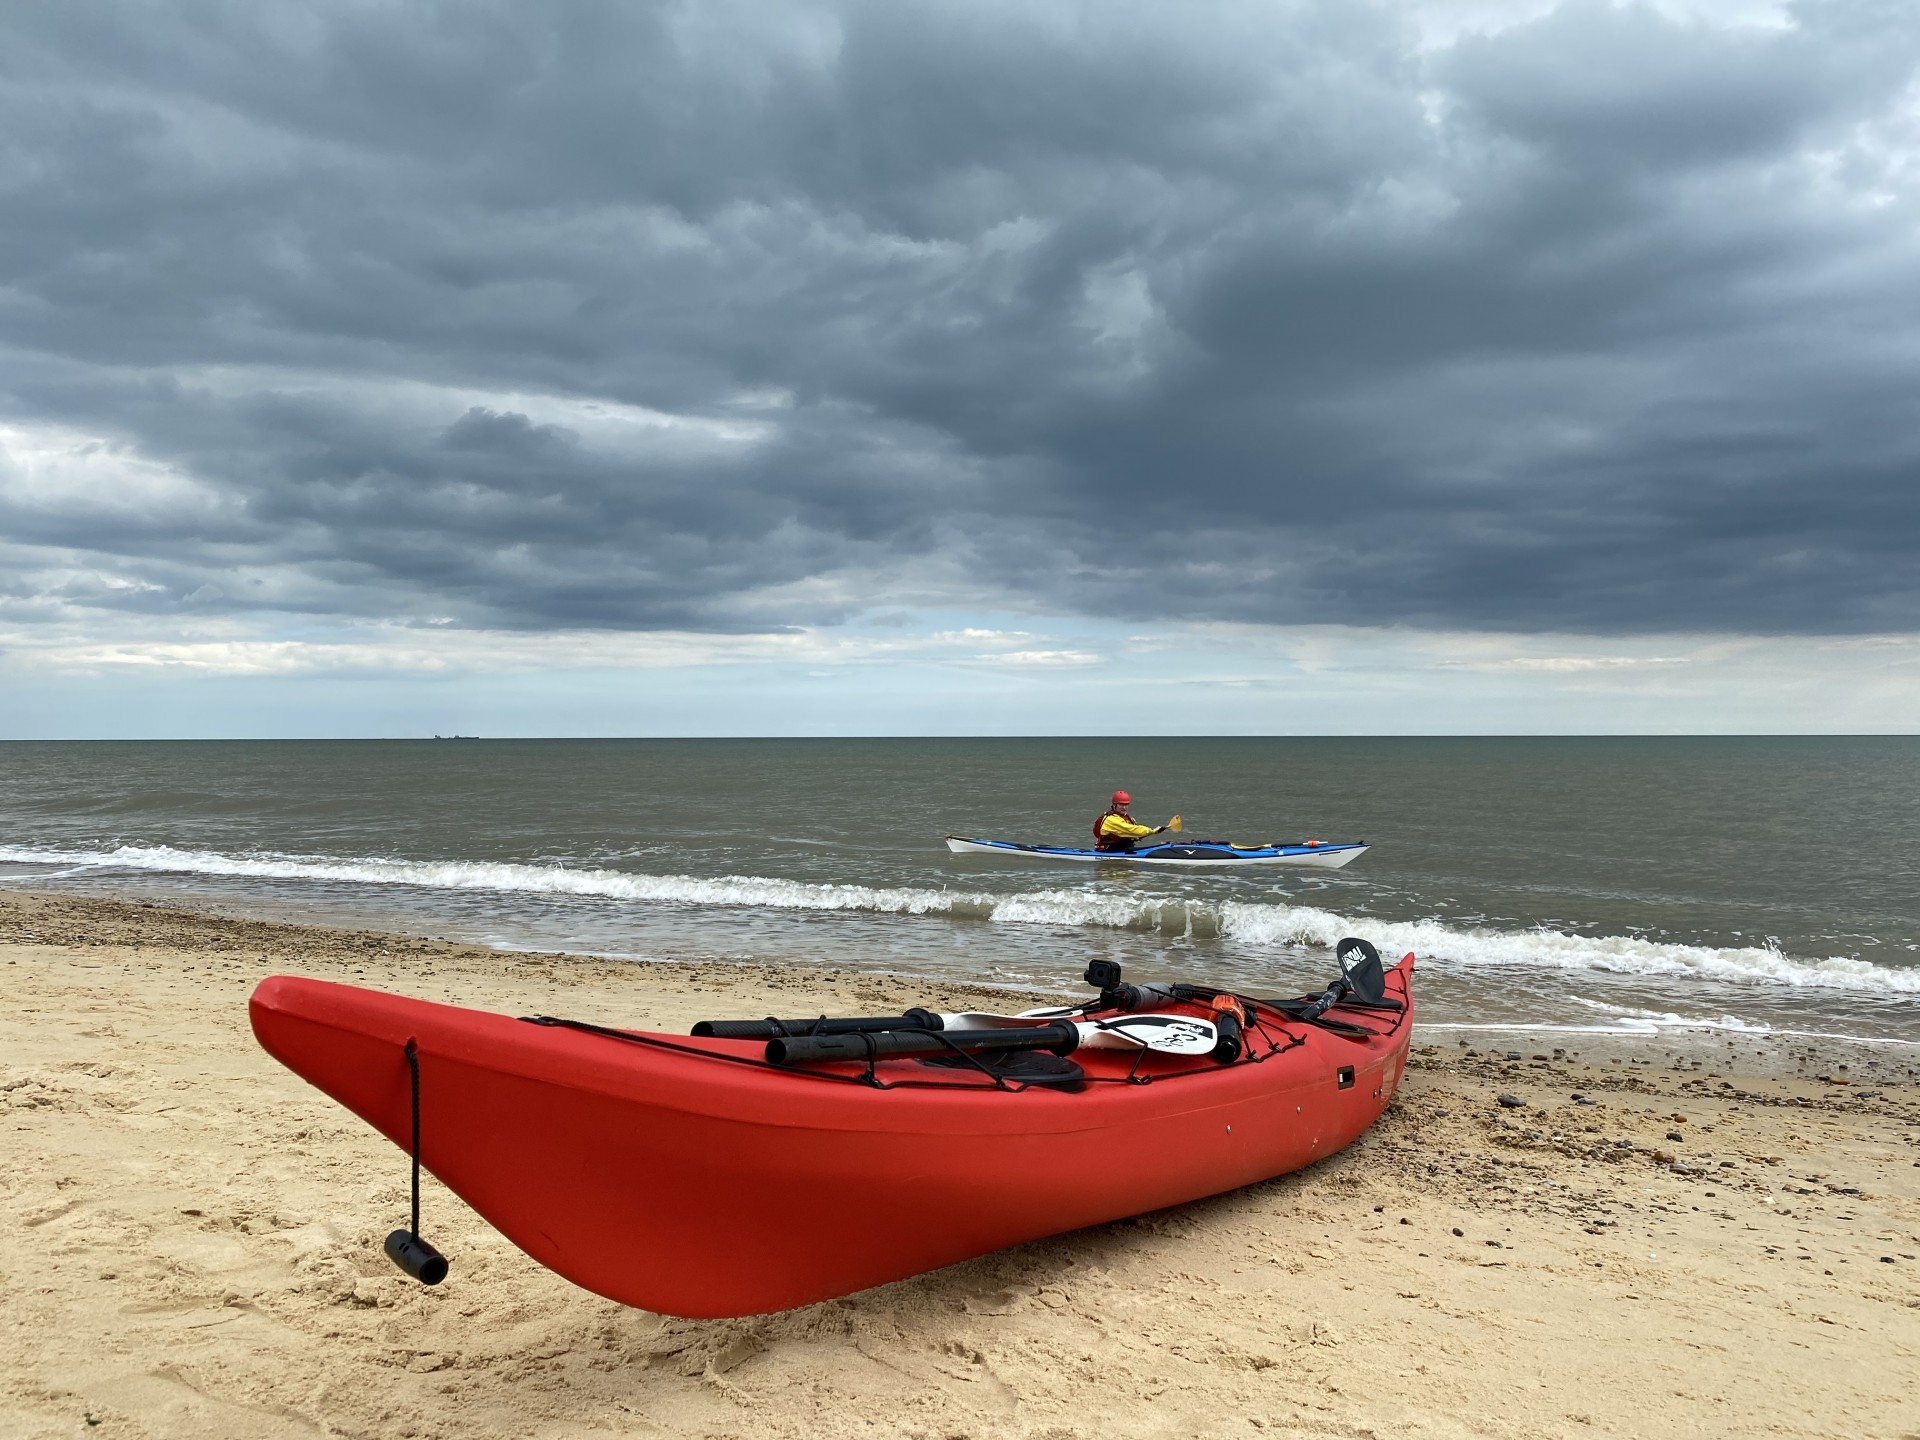 NDK RM Sport plastic sea kayak in red on a sandy beach with a paddler in the background